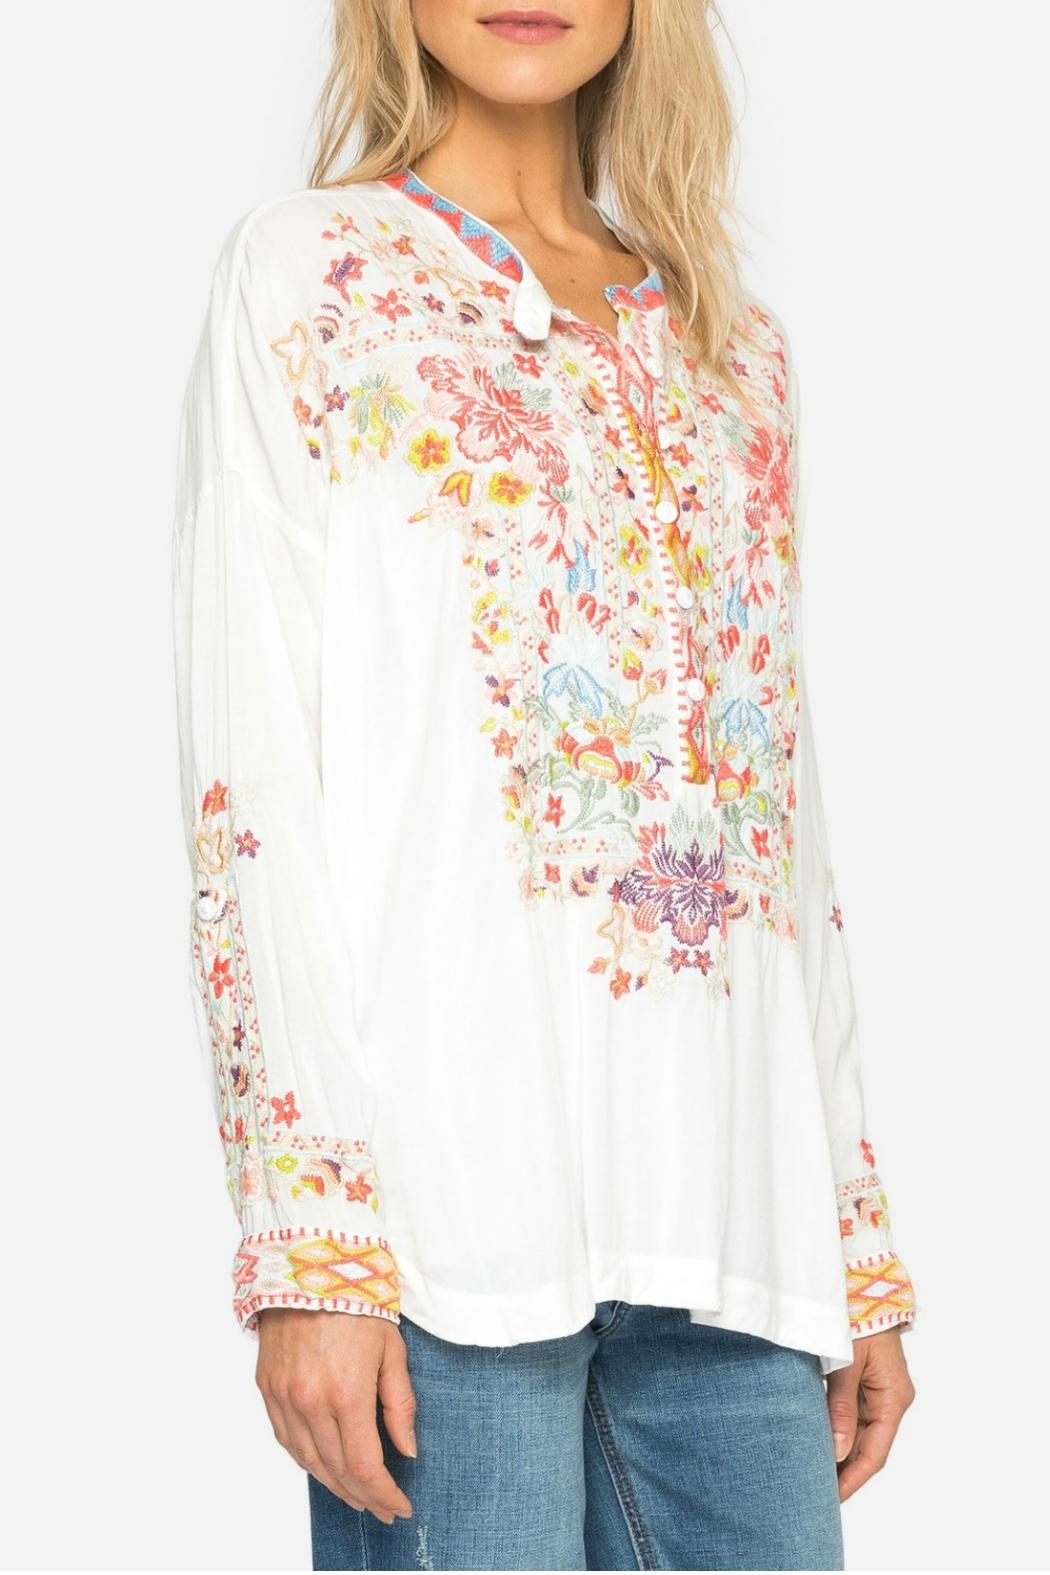 77a8b80a19c87c Johnny Was Yoon Embroidered Top from Texas by j.Winston — Shoptiques